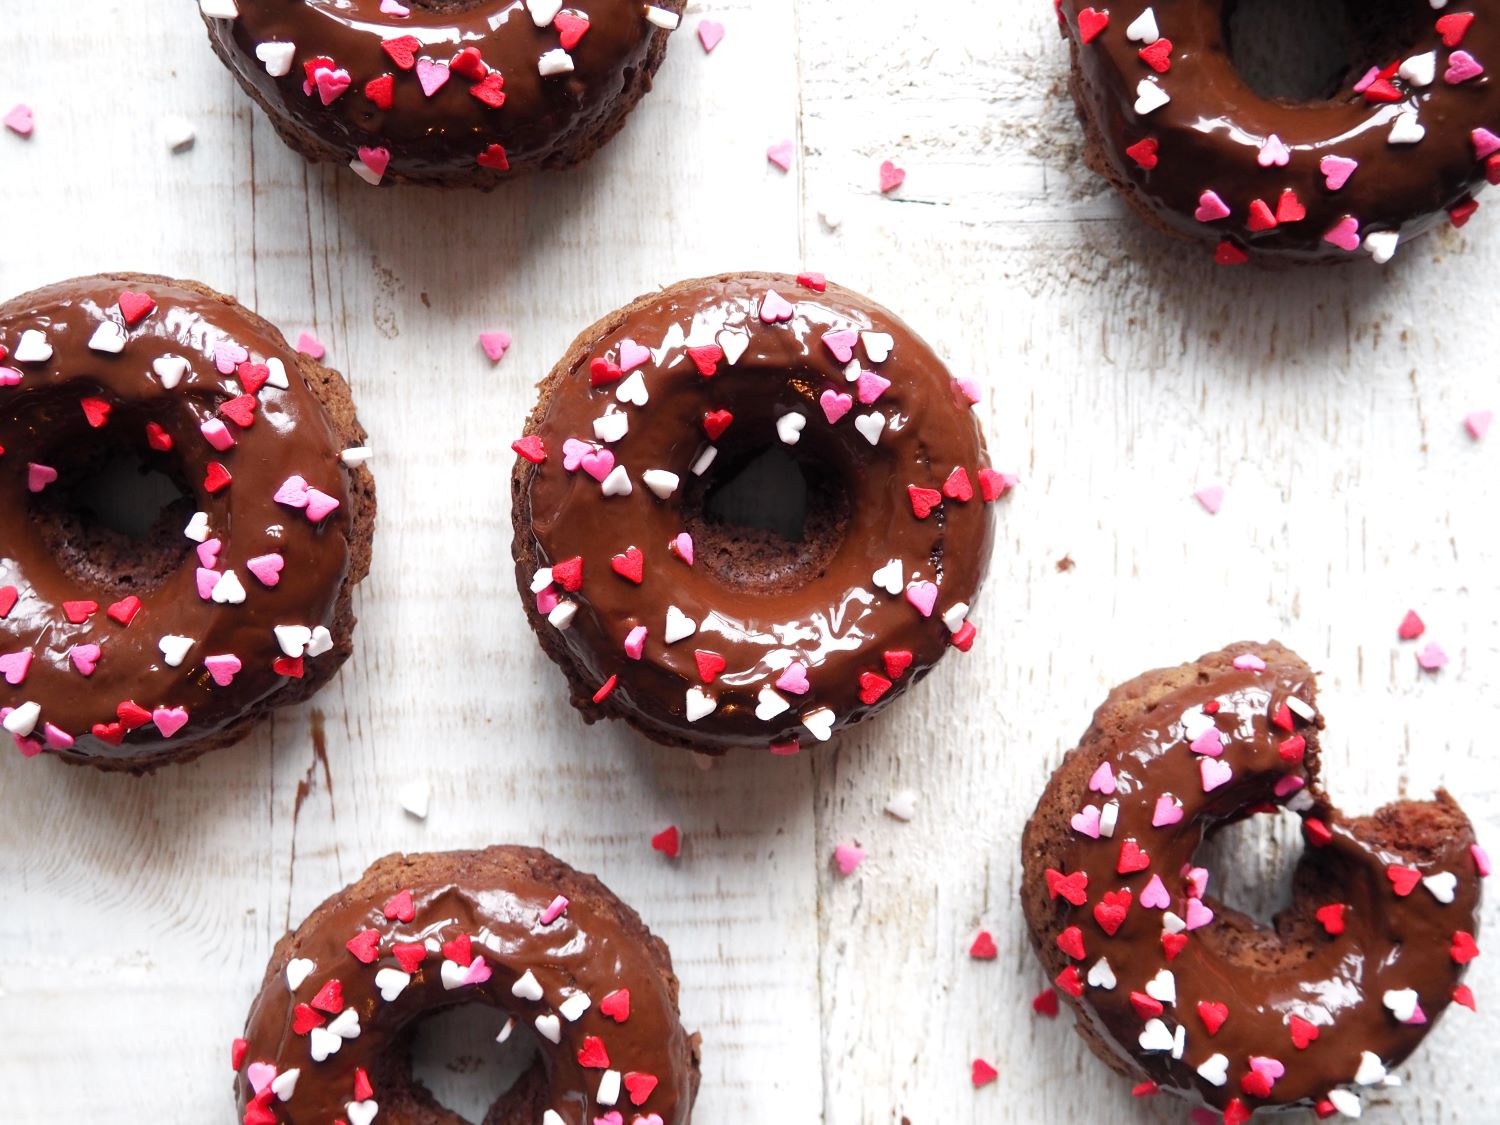 Vegan-Chocolate-Donuts-All-Day-Fit